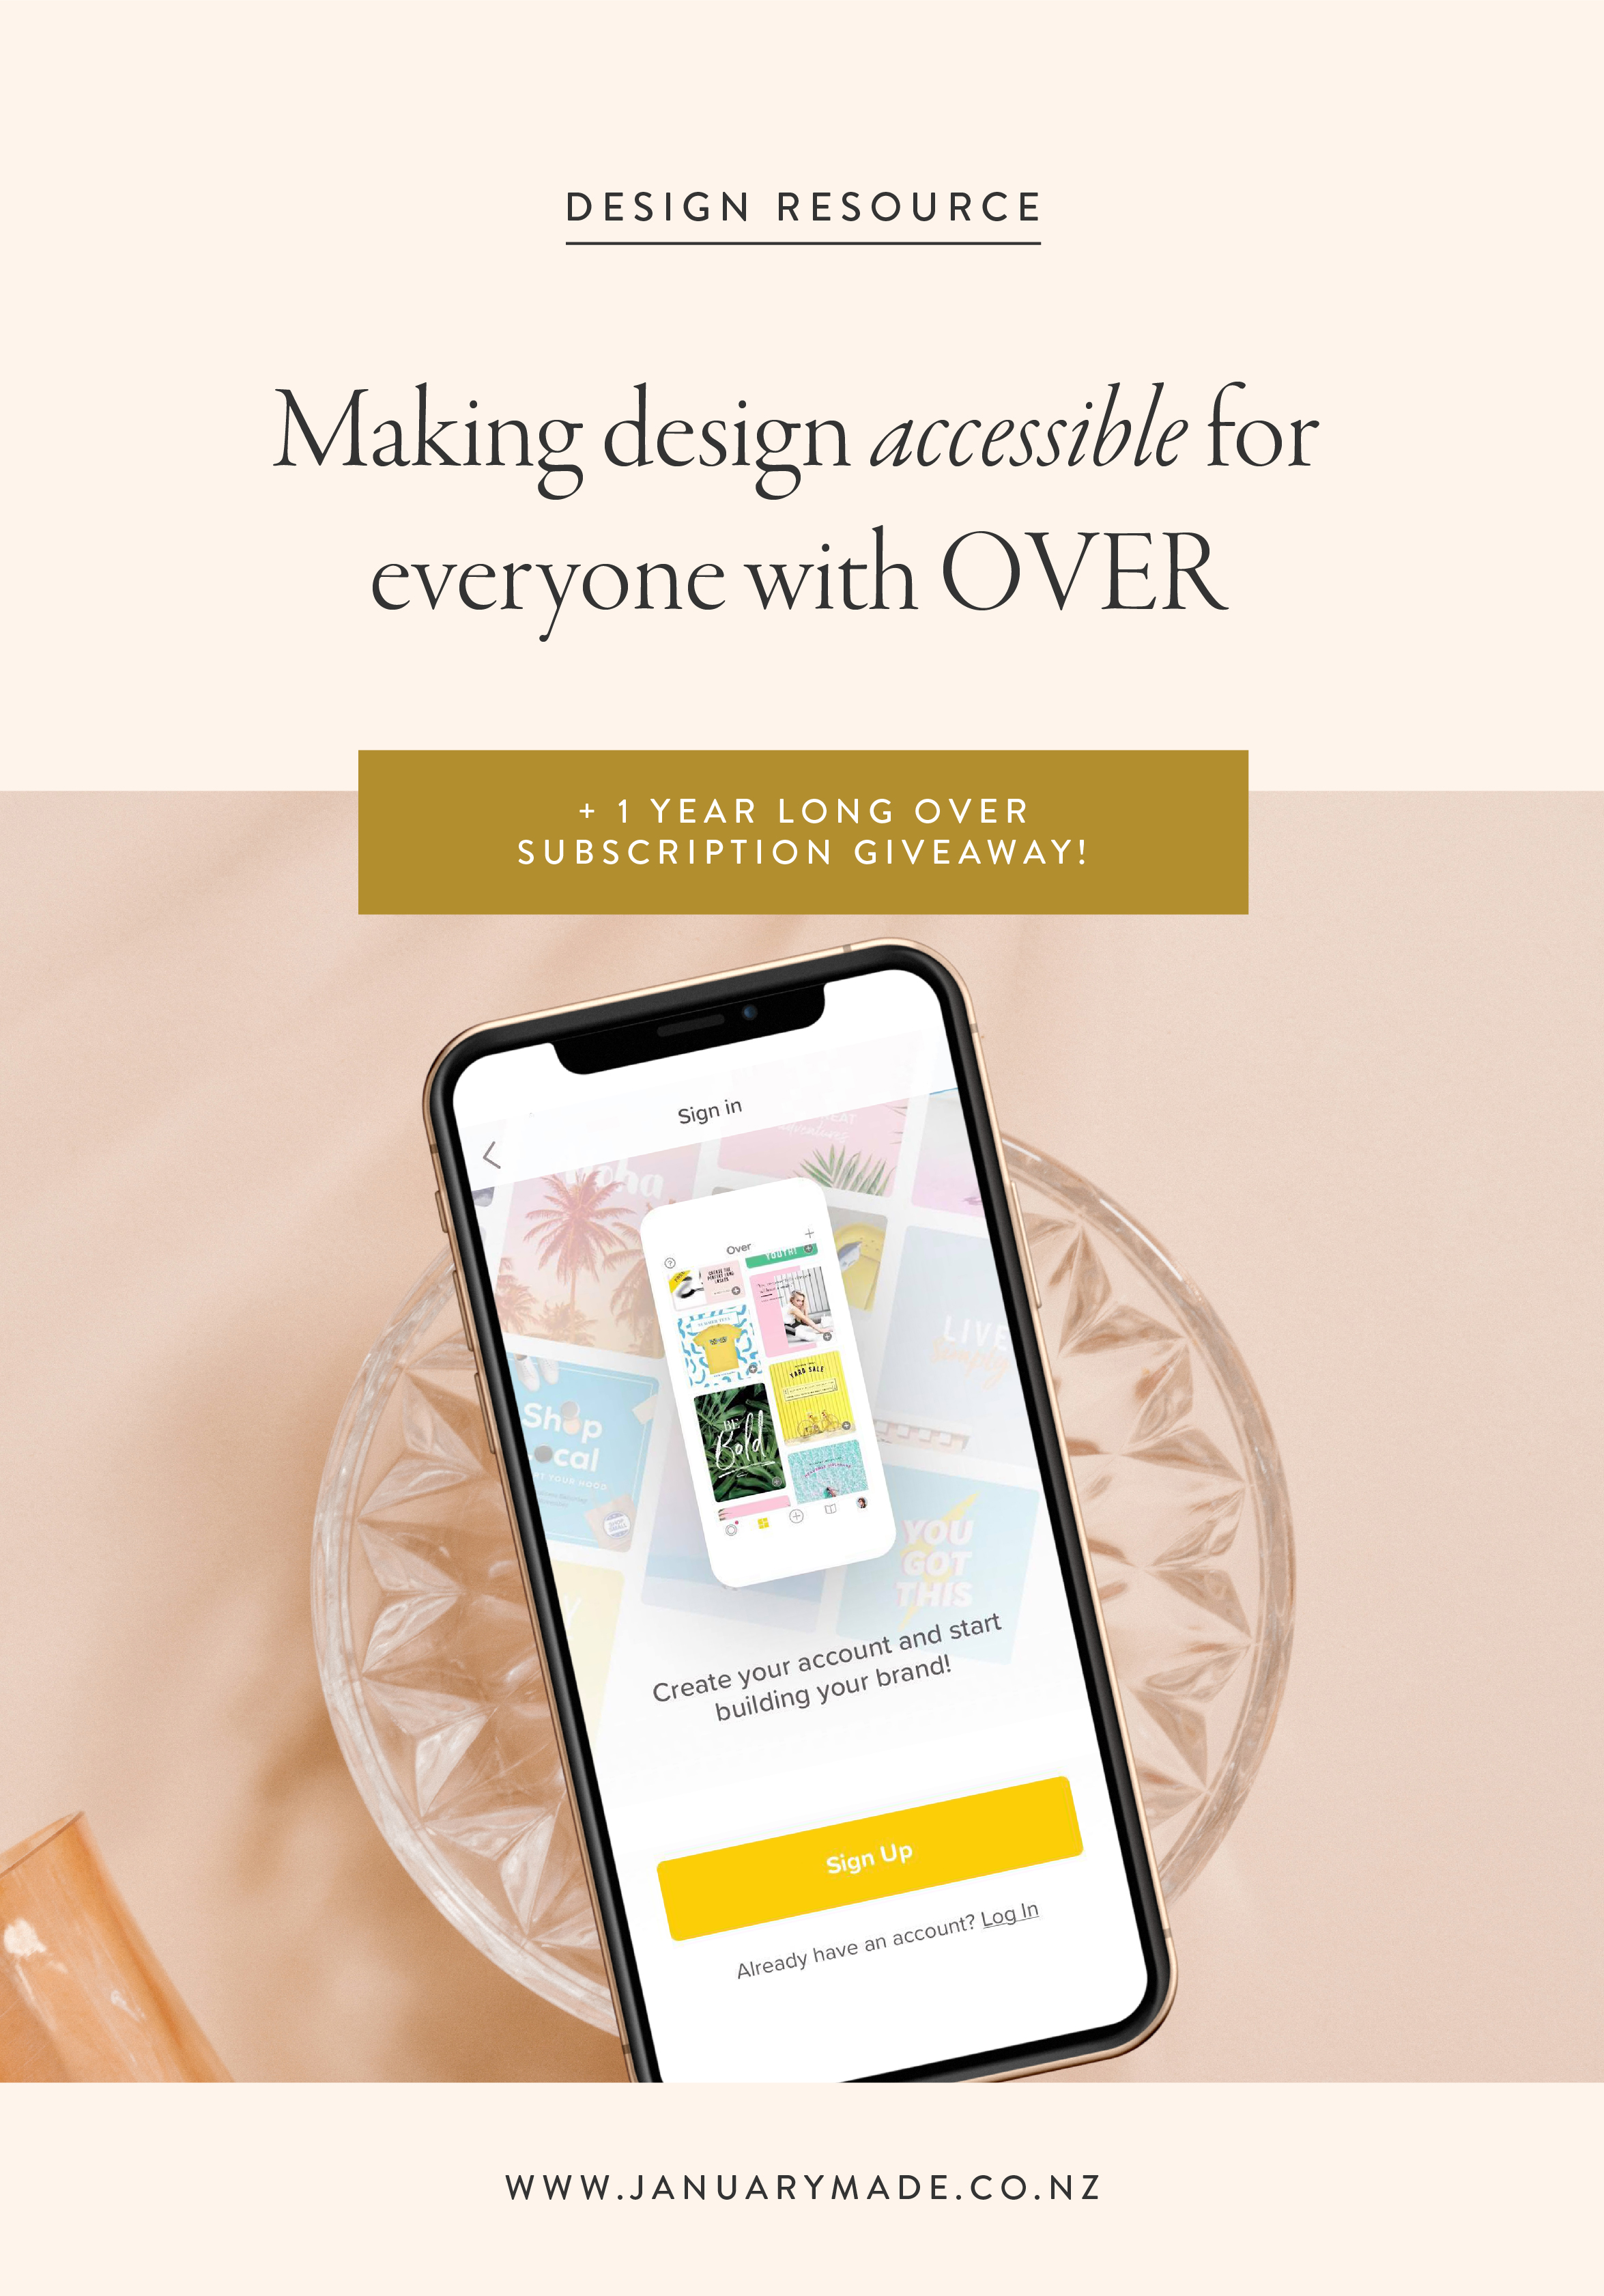 Making design accessible for everyone with OVER + huge giveaway!